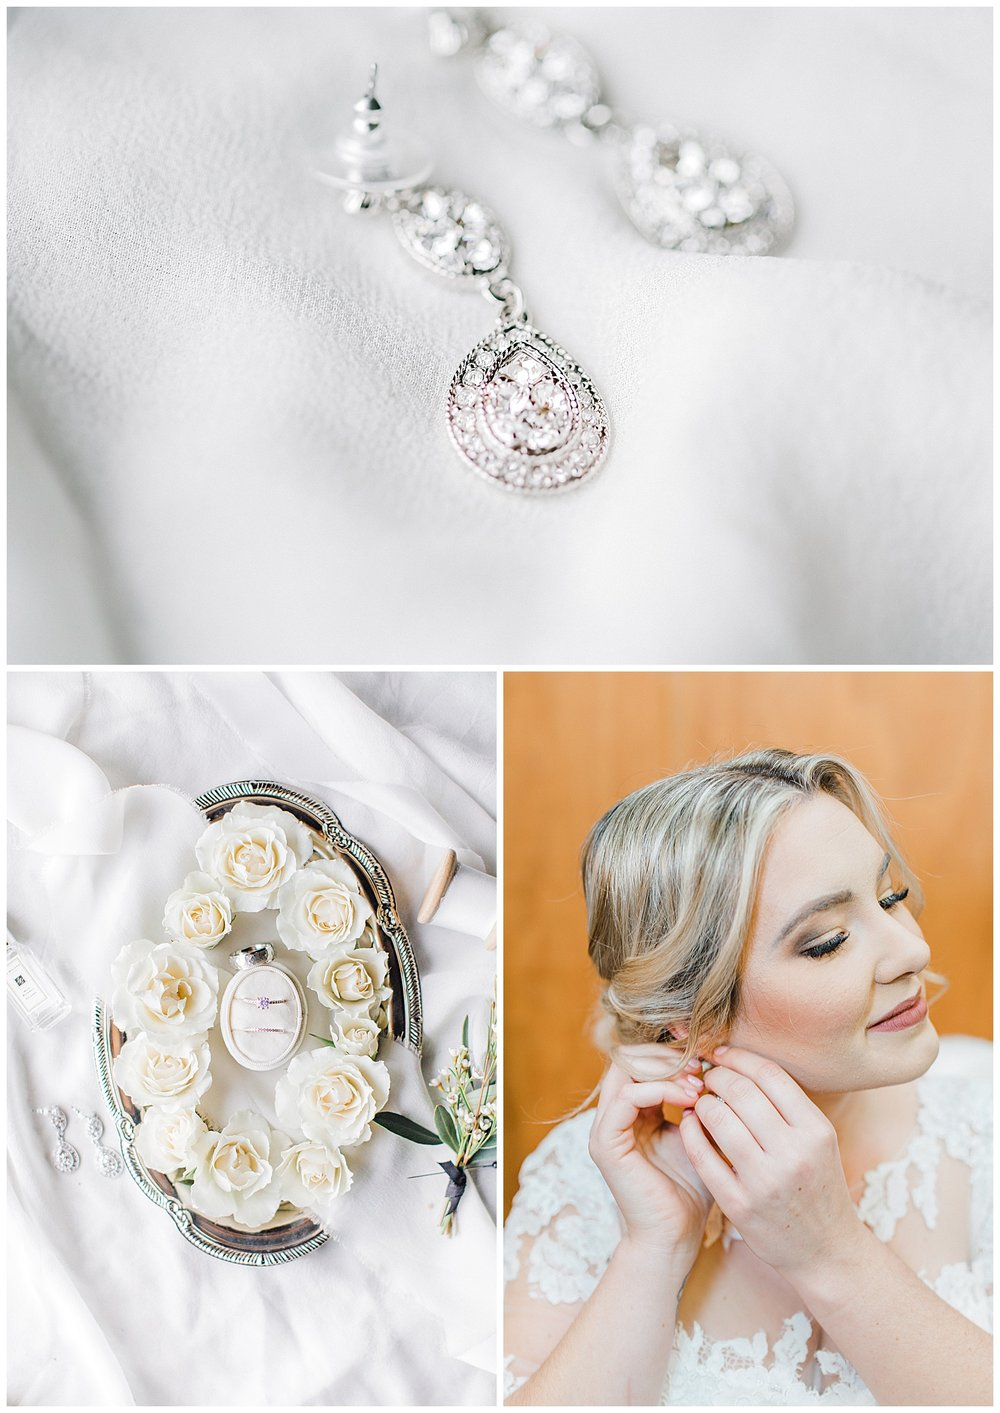 ERC-6116_A beautiful winter wedding in Snohomish, Washington at Thomas Family Farm was simply perfect.  This rustic and modern styled wedding was dripping with romance and photographed by Emma Rose Company, a pacific northwest wedding photographer..jpg